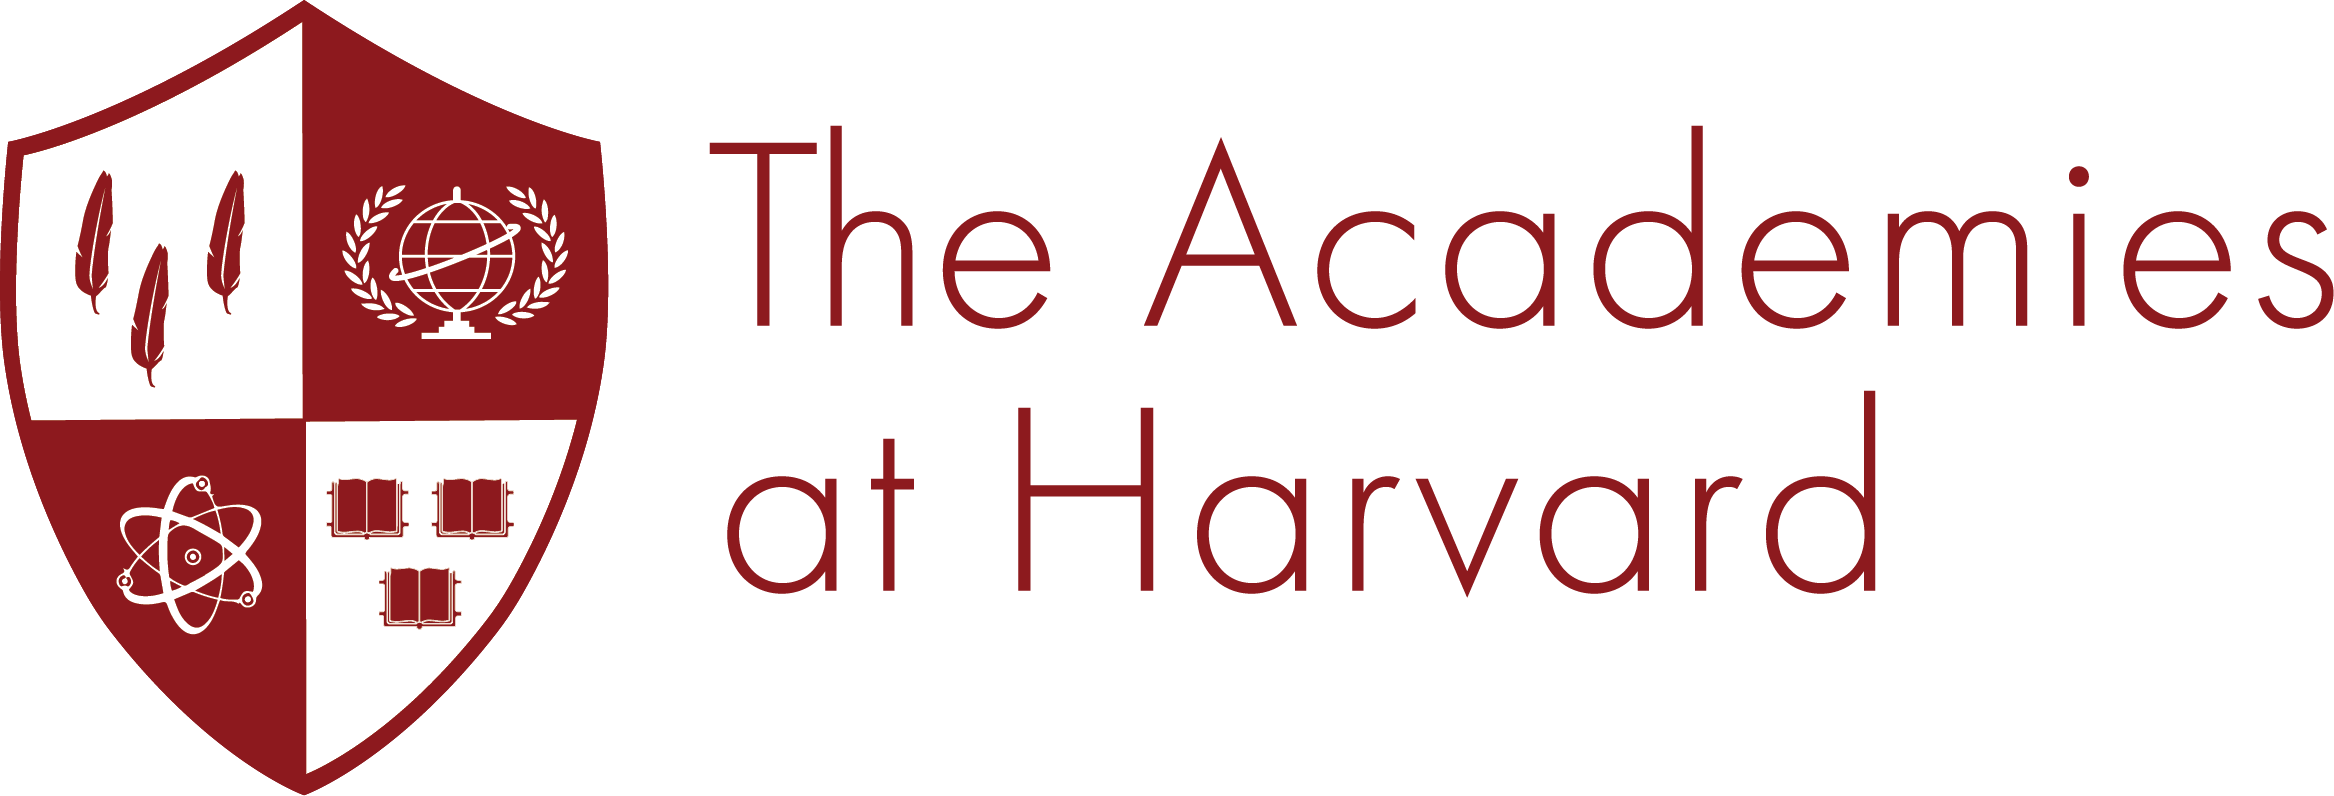 Harvard Student Agencies